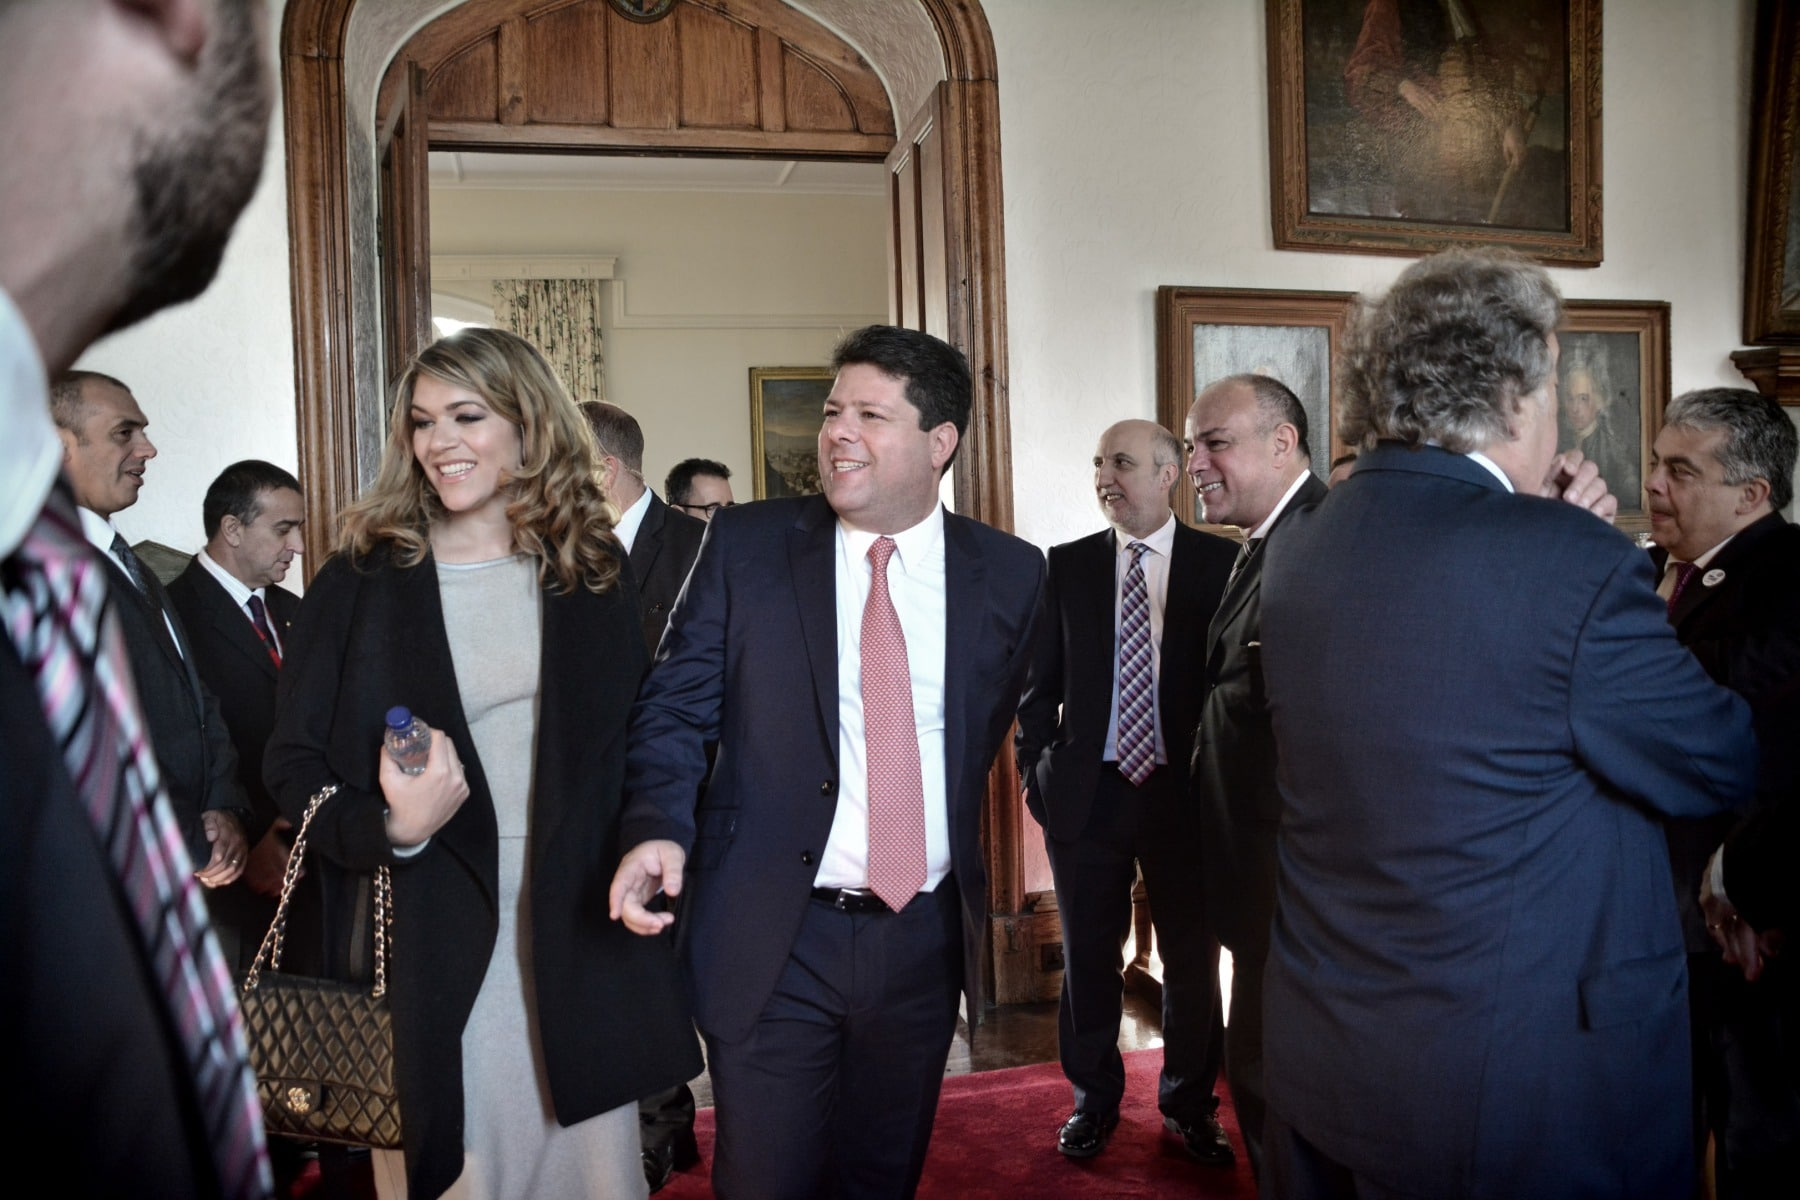 Gibraltar - 27th November 2015 - Fabian Picardo led his GSLP/LiberalAlliance Ministers to the Convent earlier this morning where there were sworn into Government by Acting Governor Alison Macmilan. He and his team then headed to Number Six where they held their first press call as the newly formed Government following a landslide victory.